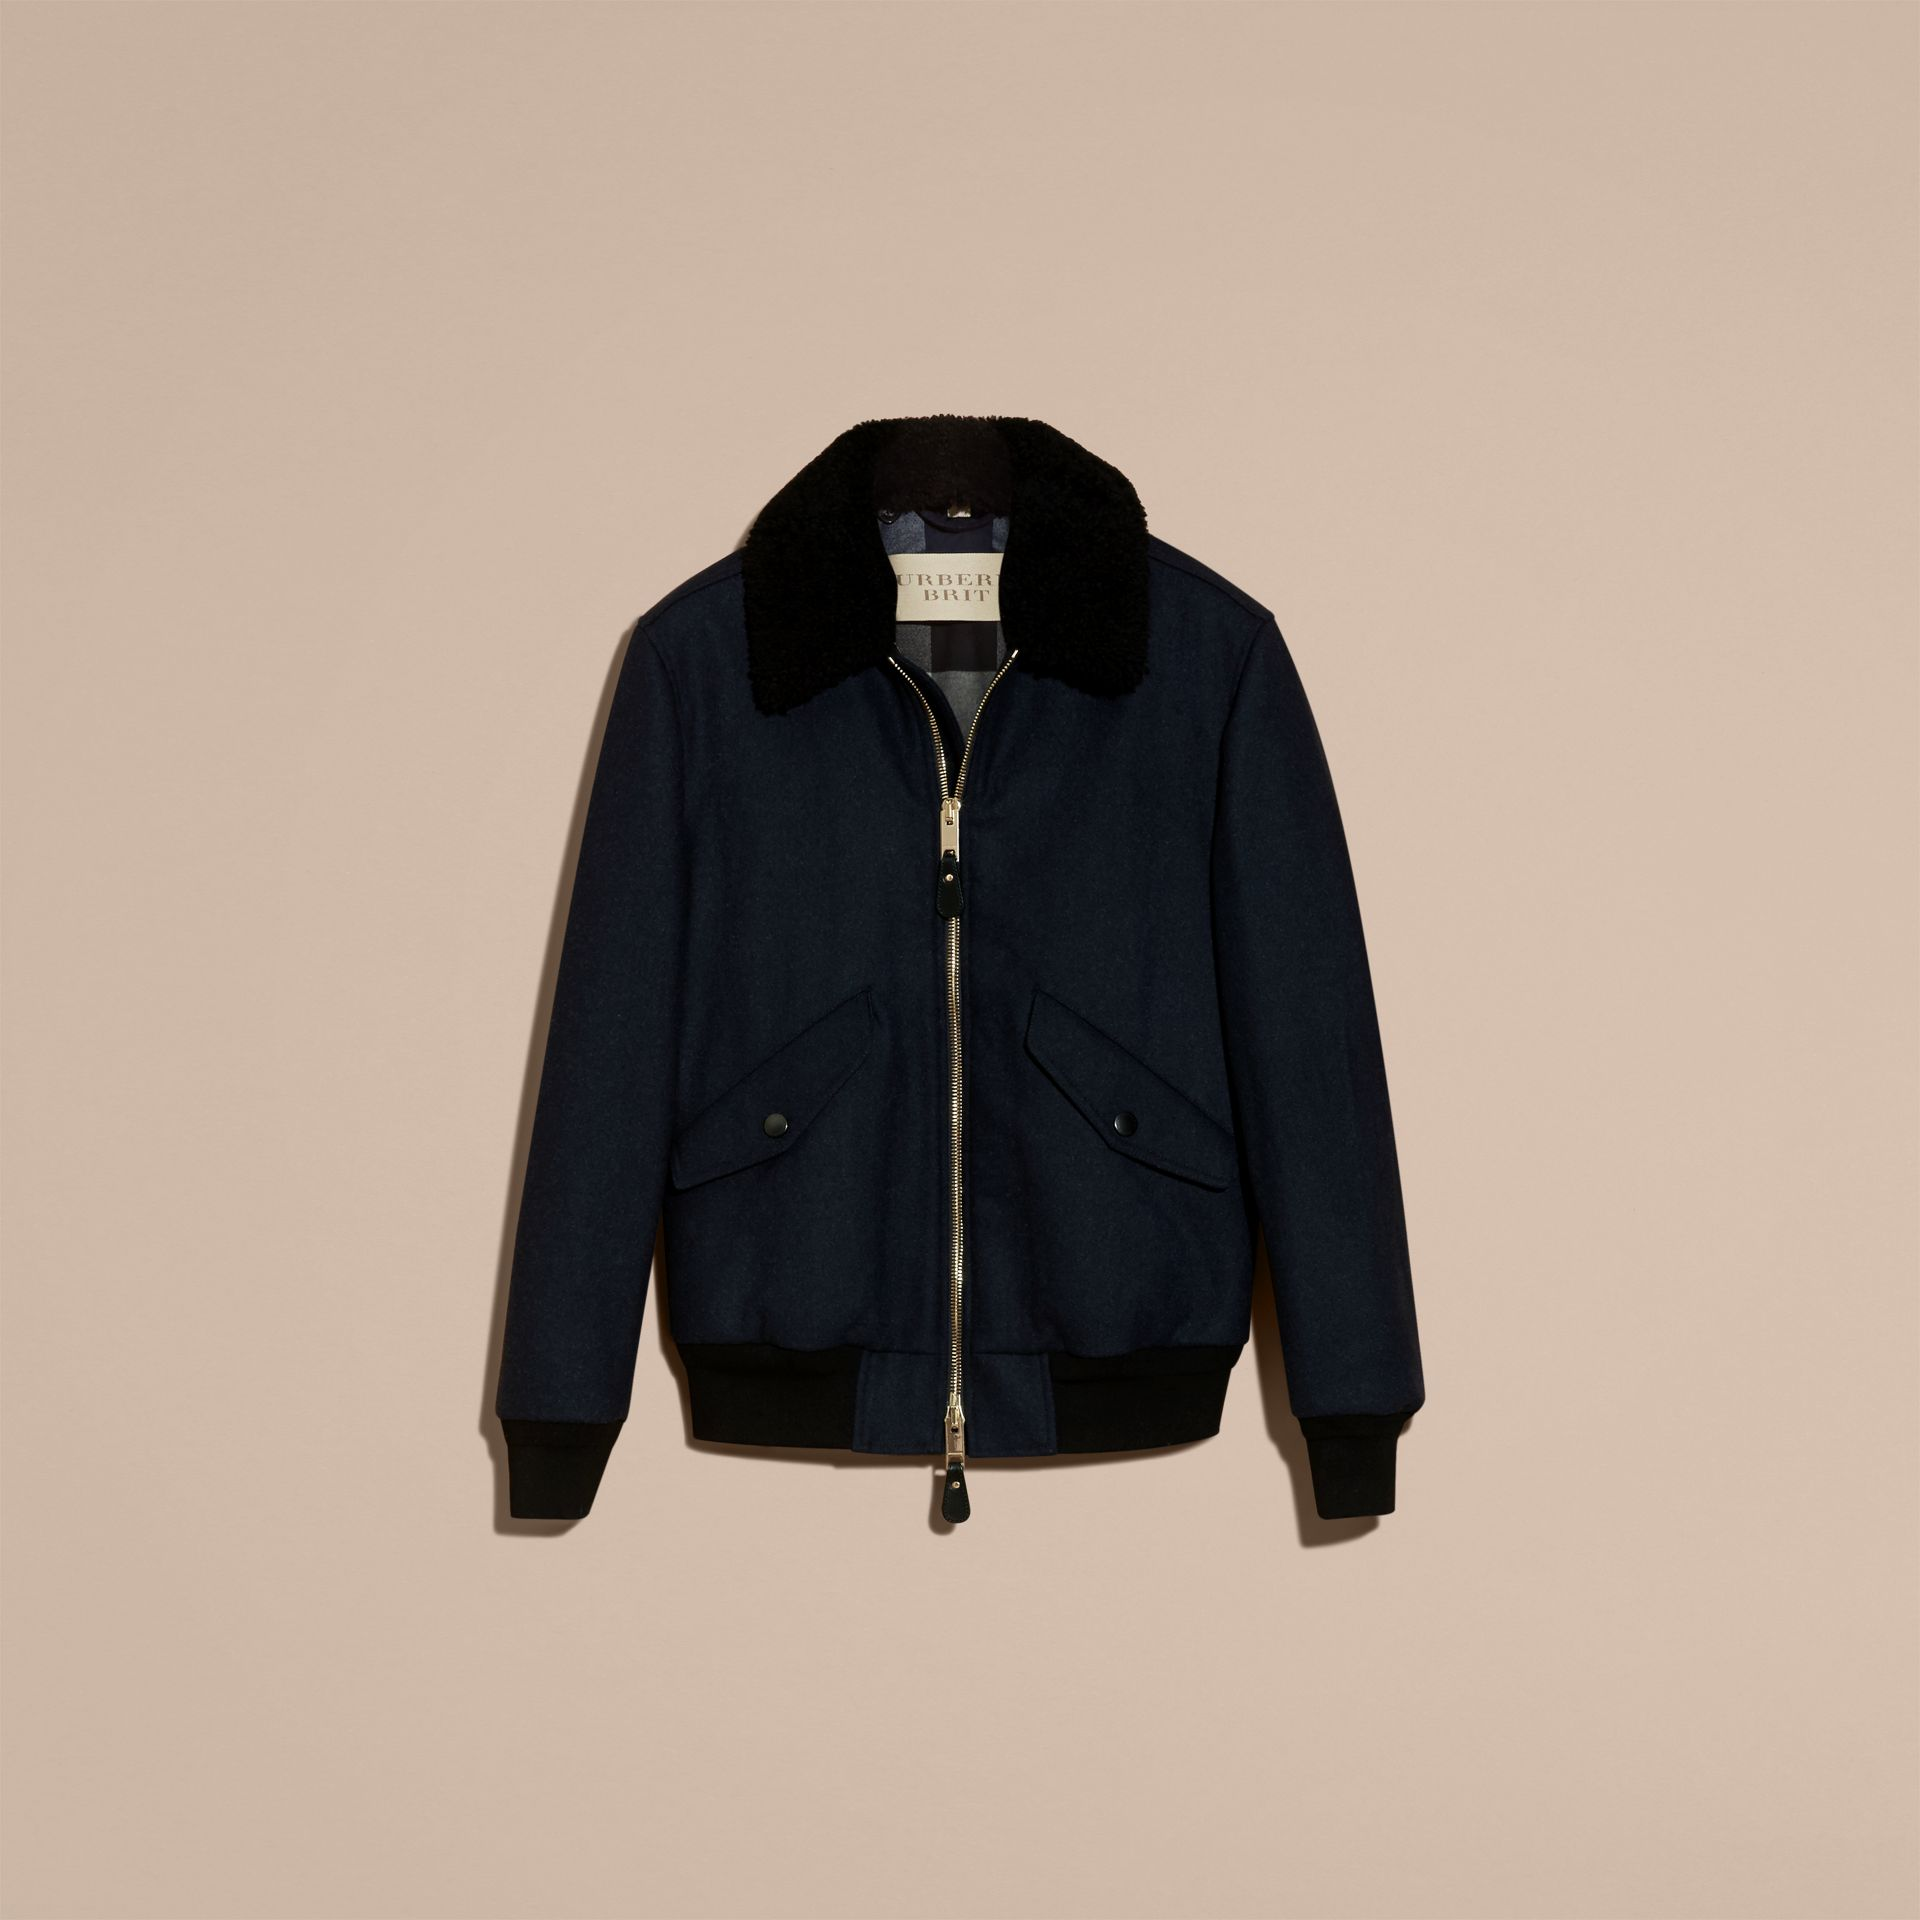 Navy melange Lightweight Wool Bomber Jacket with Detachable Shearling Top Collar - gallery image 4